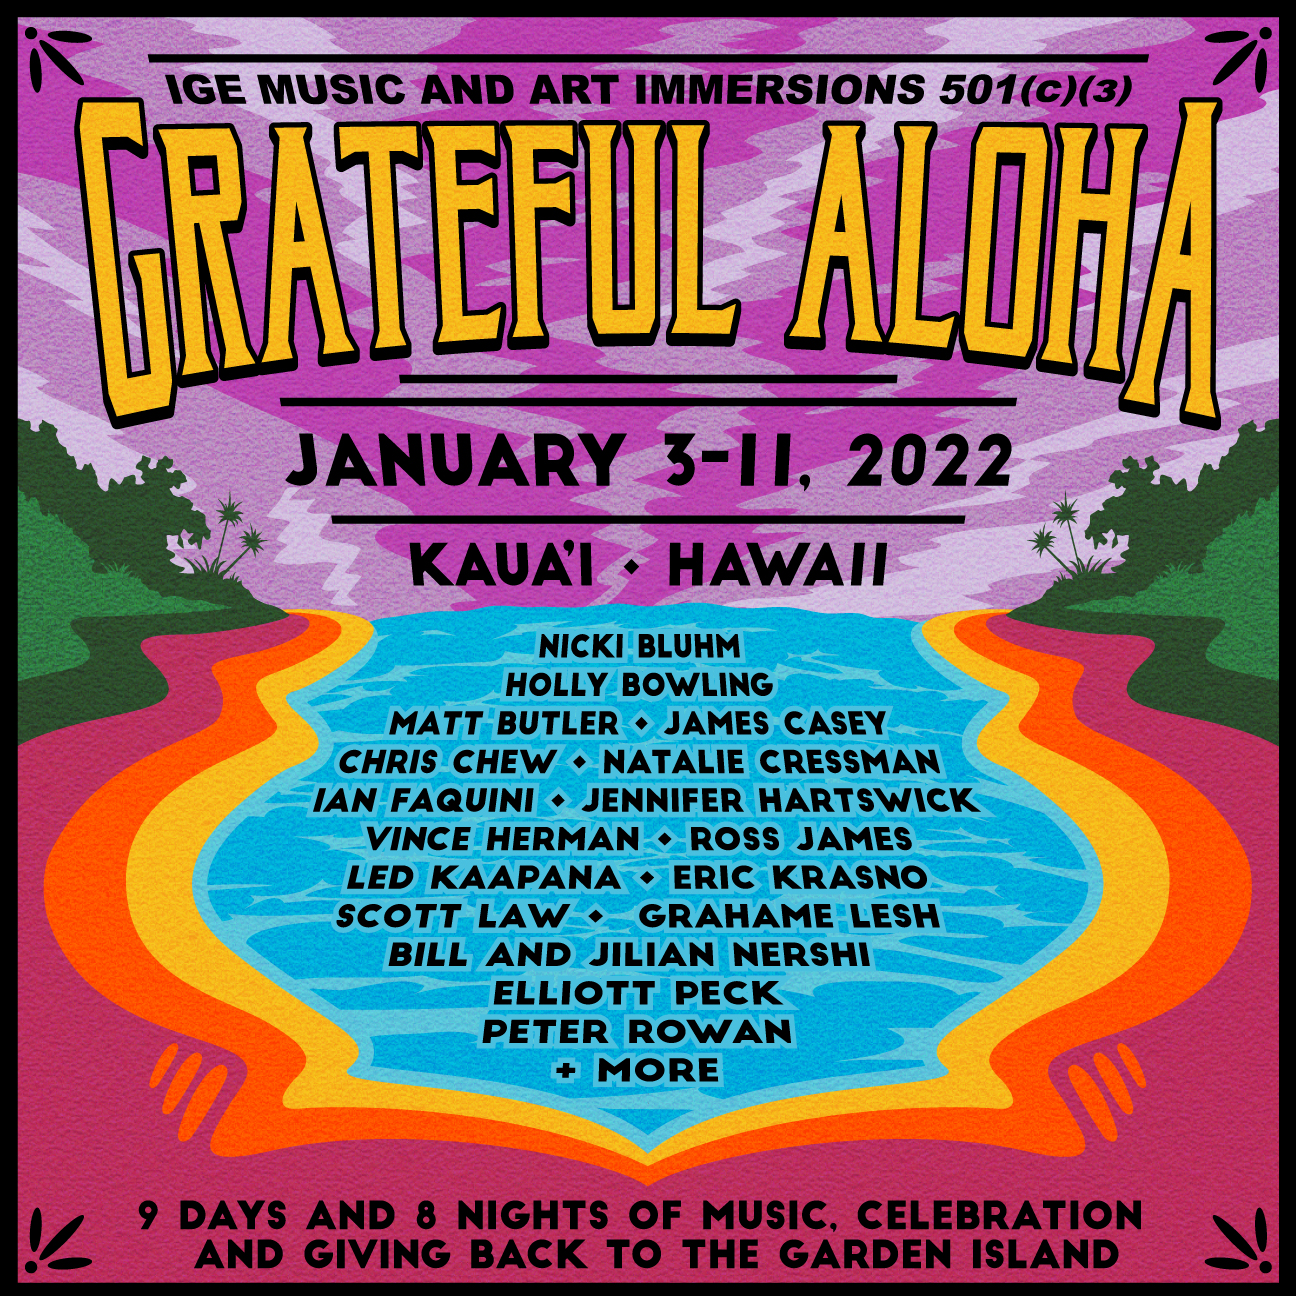 Innovative Giving Enhancement (IGE) Announces Kaua'i Immersion 'Grateful Aloha' Jan. 2022